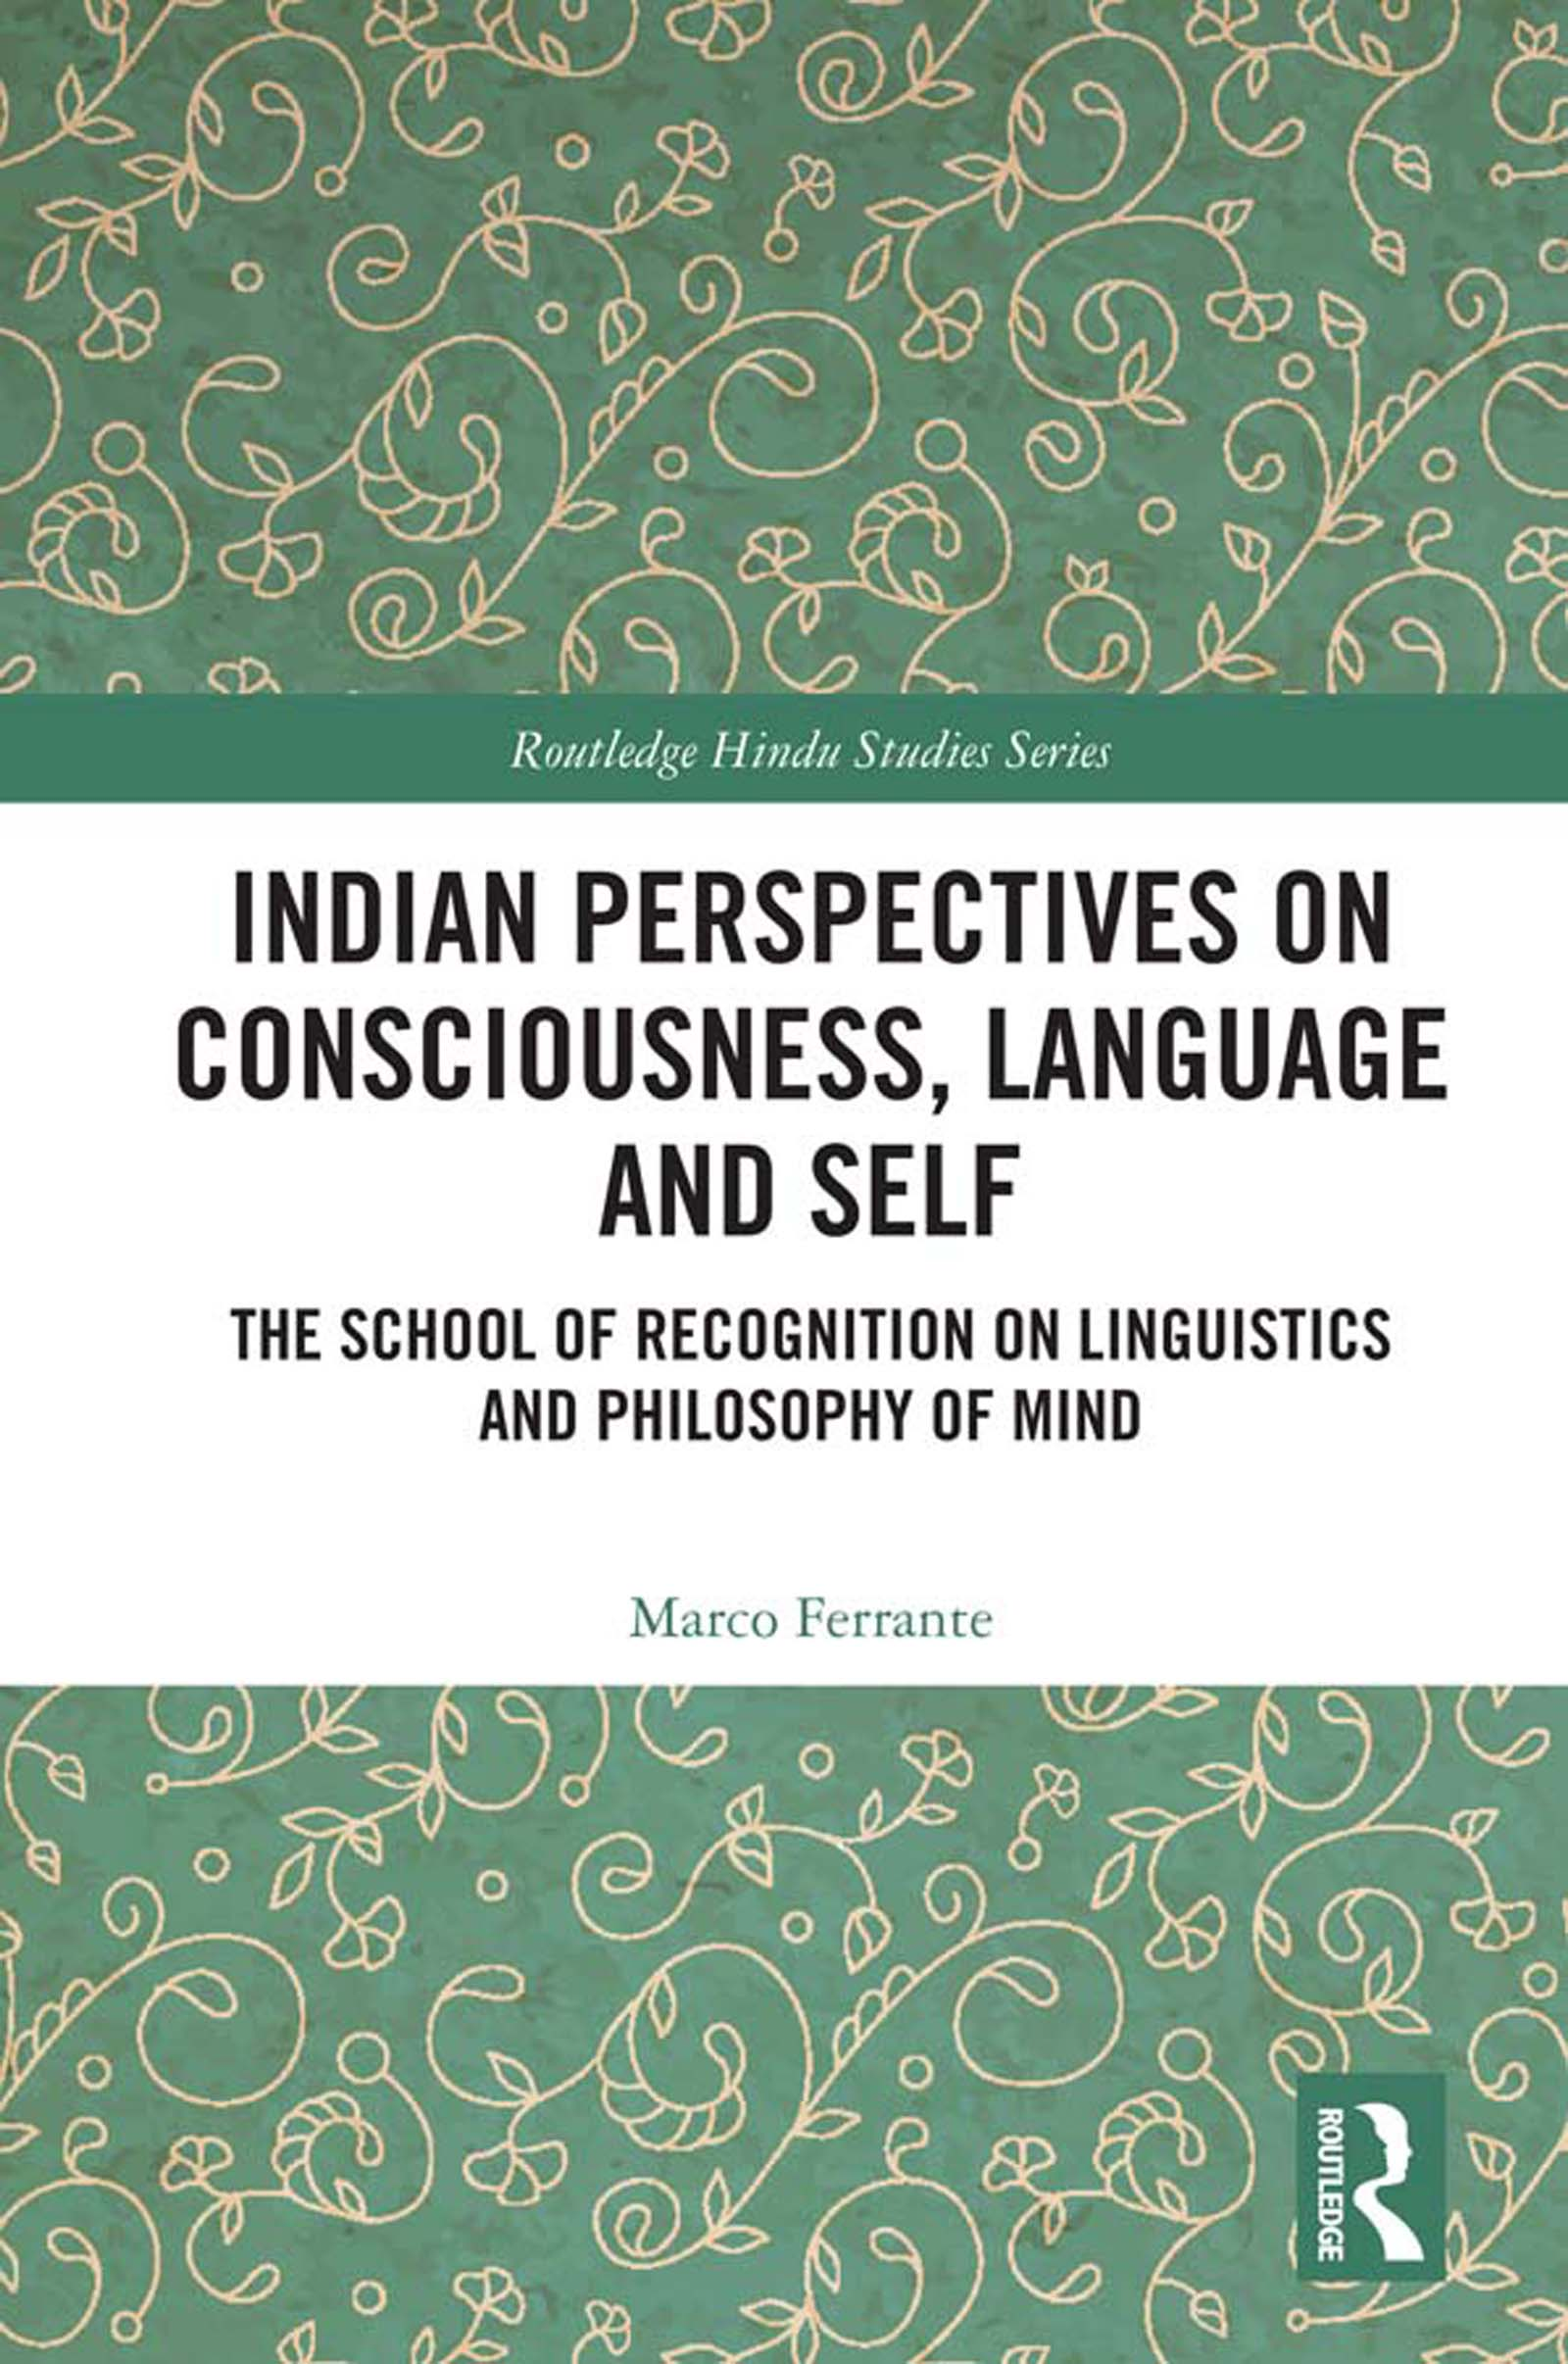 Indian Perspectives on Consciousness, Language and Self